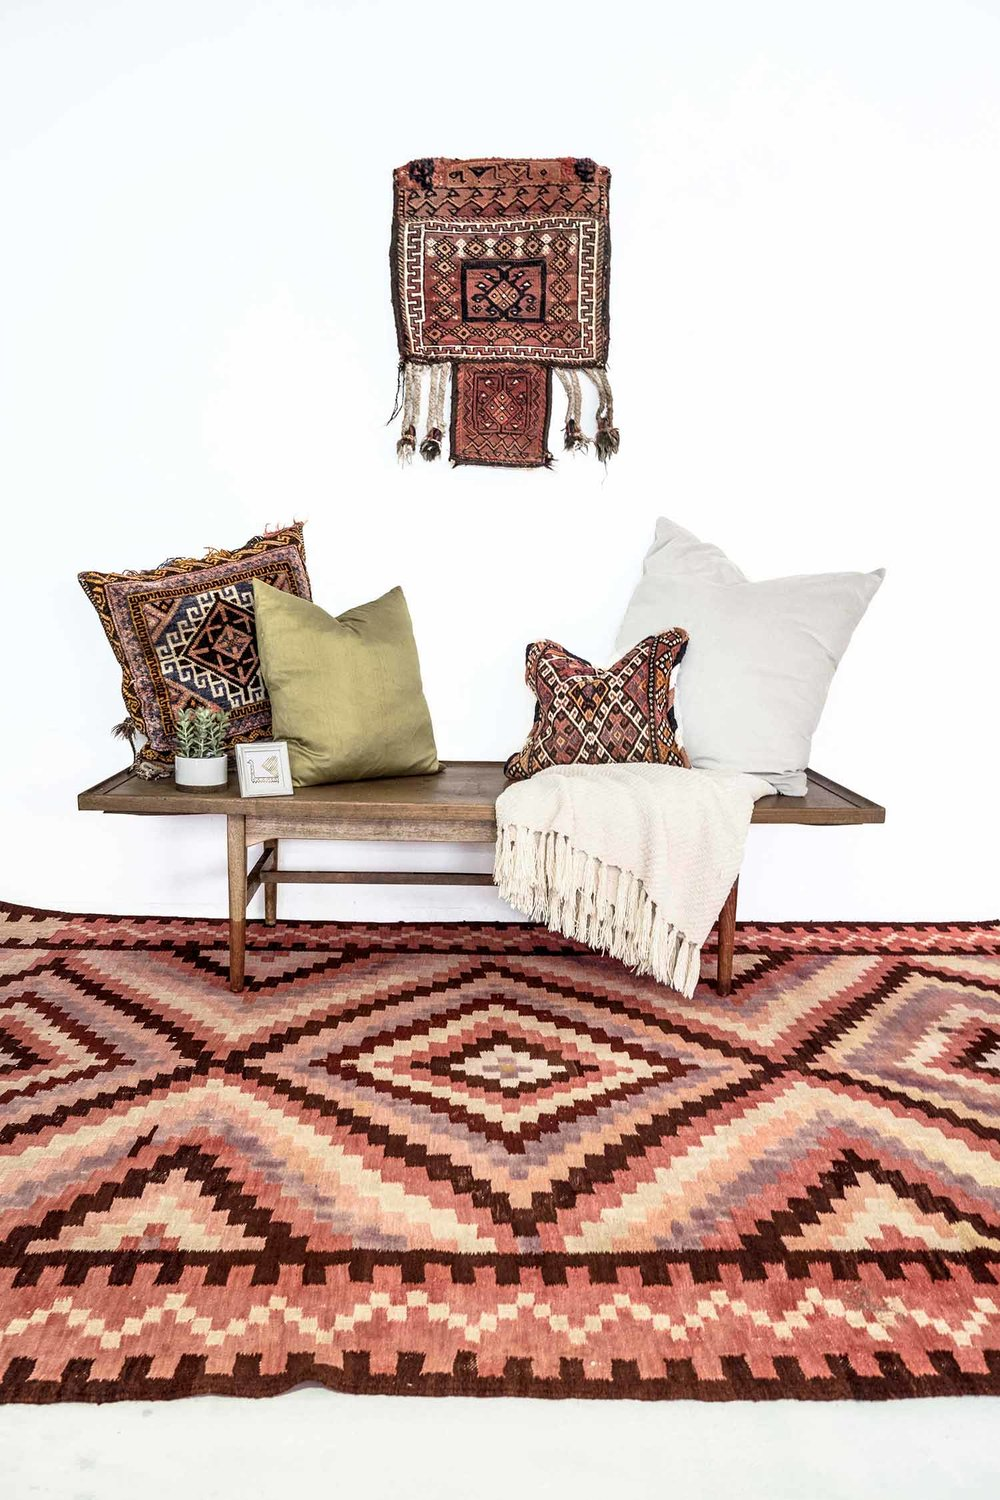 NO. 0149 /   PERSIAN KILIM (MASH-HAD) / 65 YEARS / 10'6 x 6'8 FT